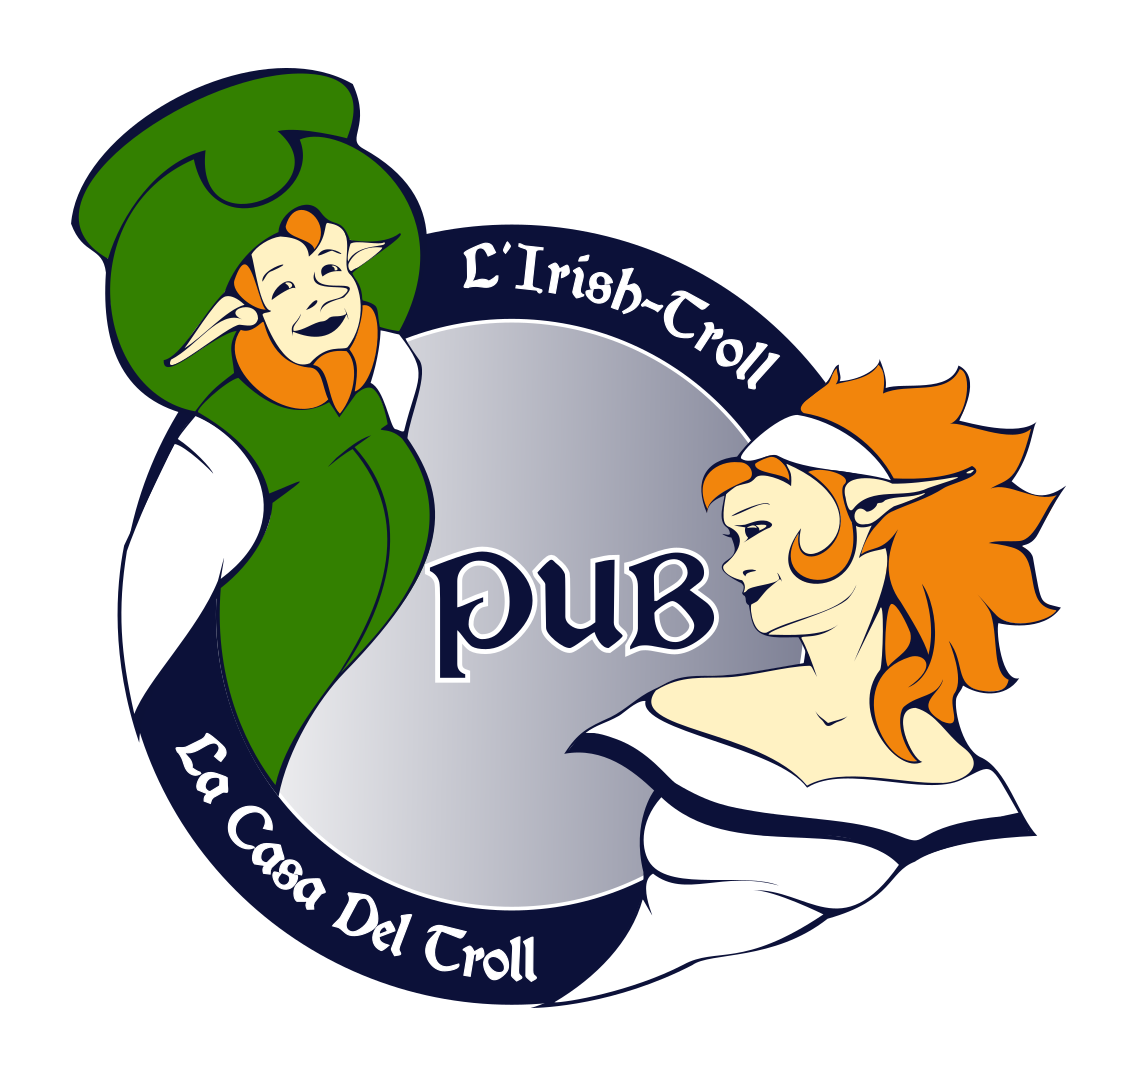 Logo L'Irish-Troll 2018